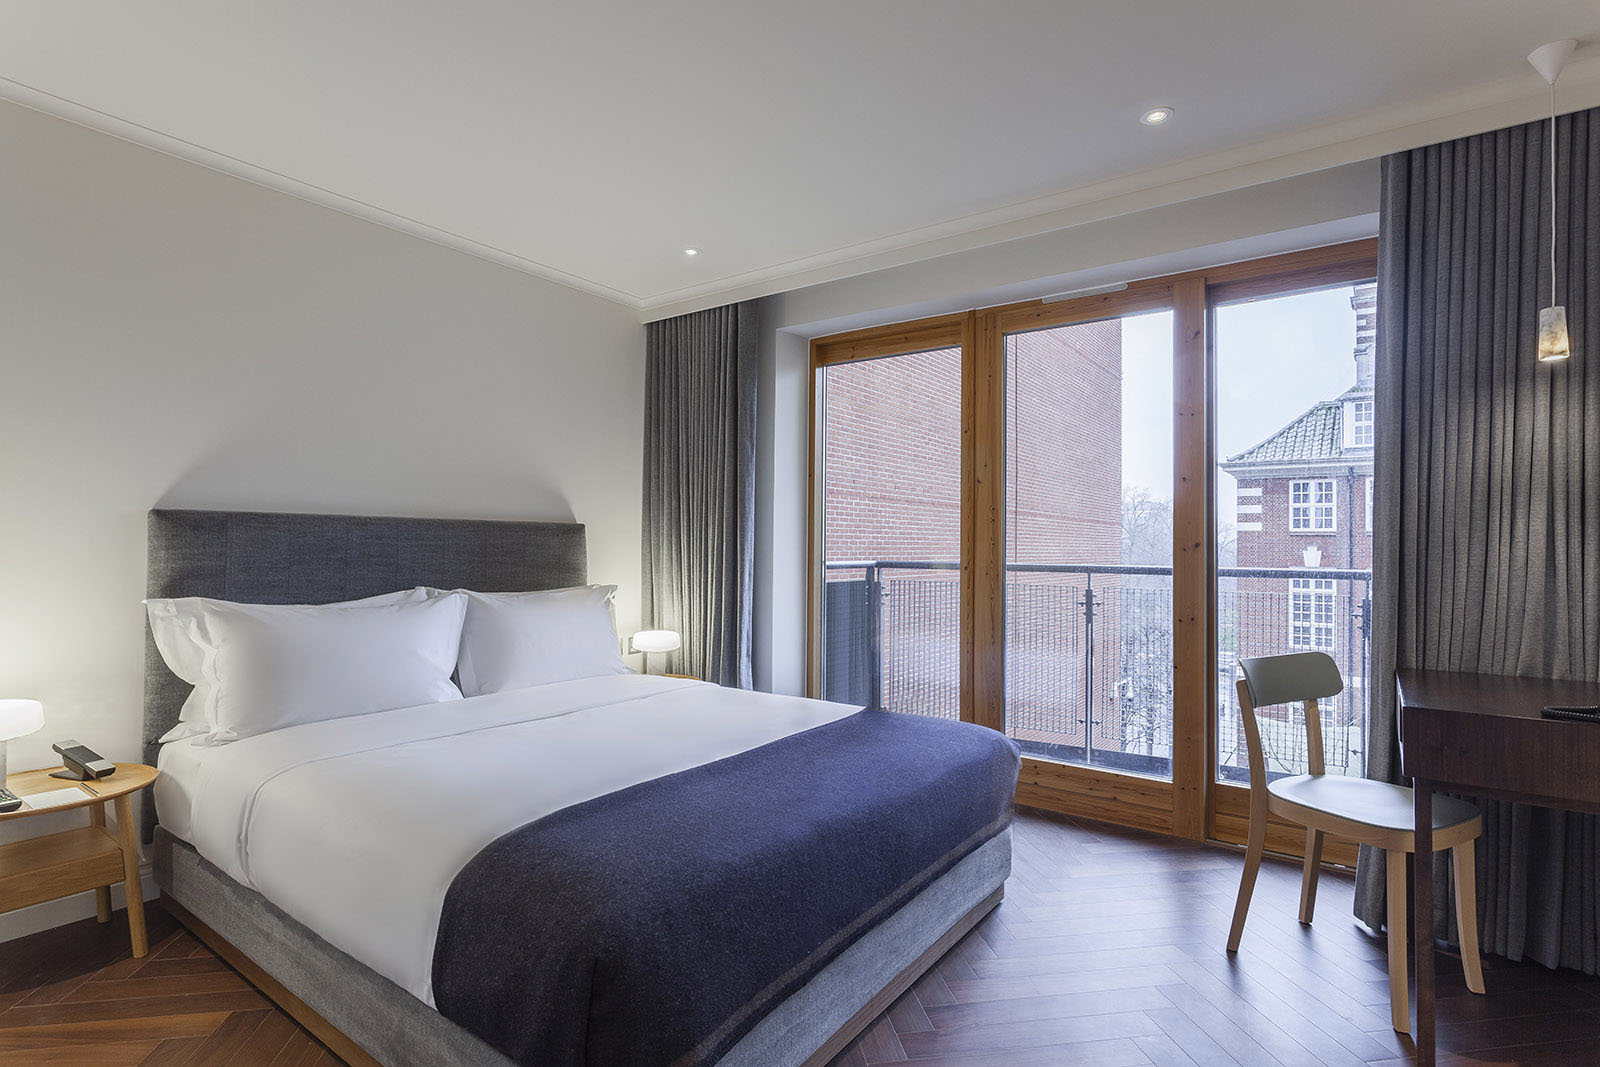 A Luxury House Room of the Roseate Hotel Reading